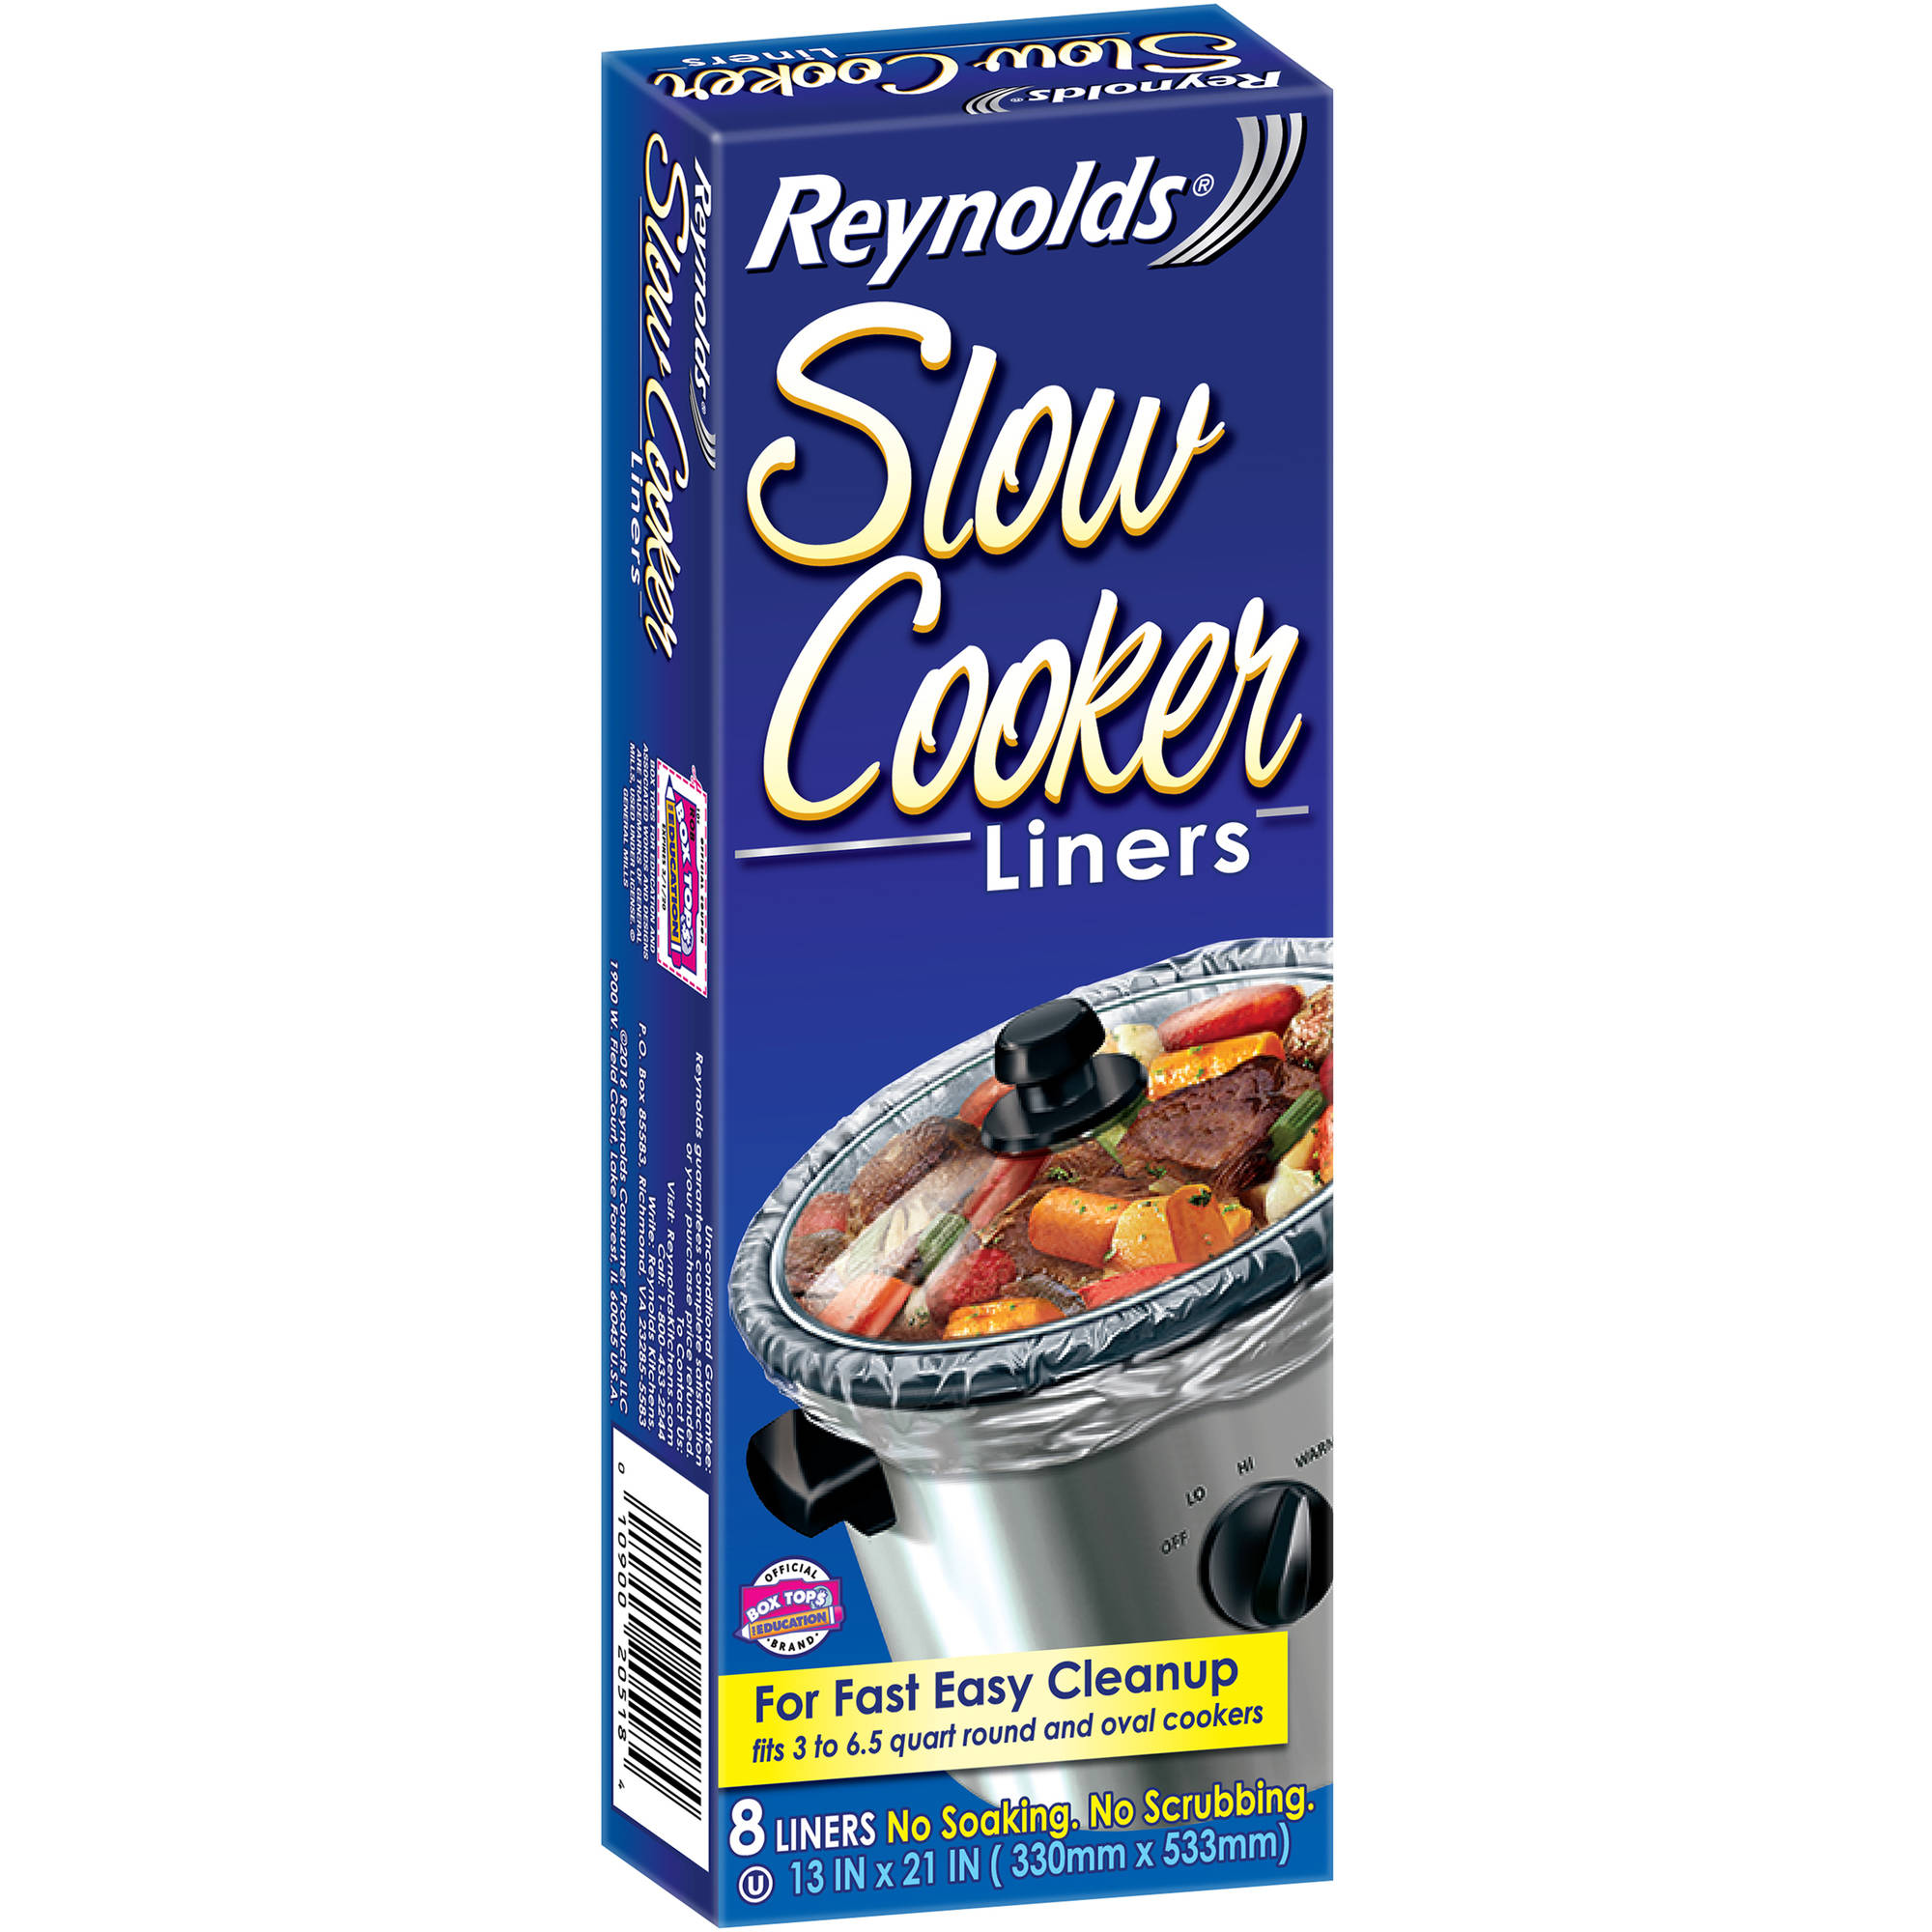 Reynolds Slow Cooker Liners, 8 count